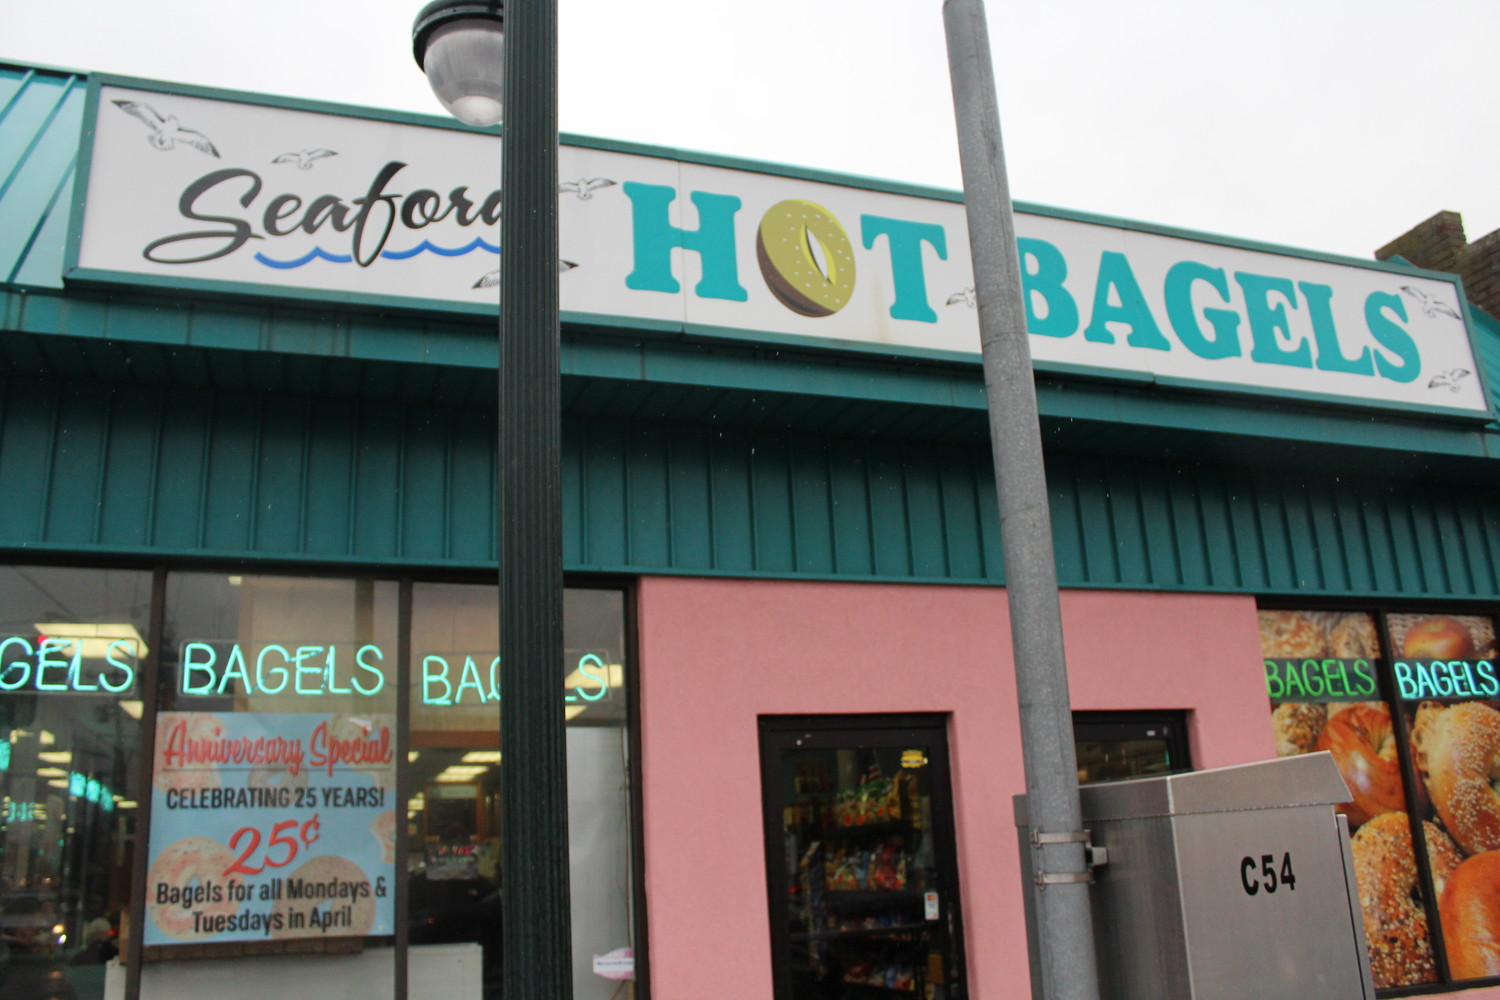 The Seaford Bagels façade, at 3970 Merrick Road in Seaford, looks as if it could fit on Miami's beachfront.